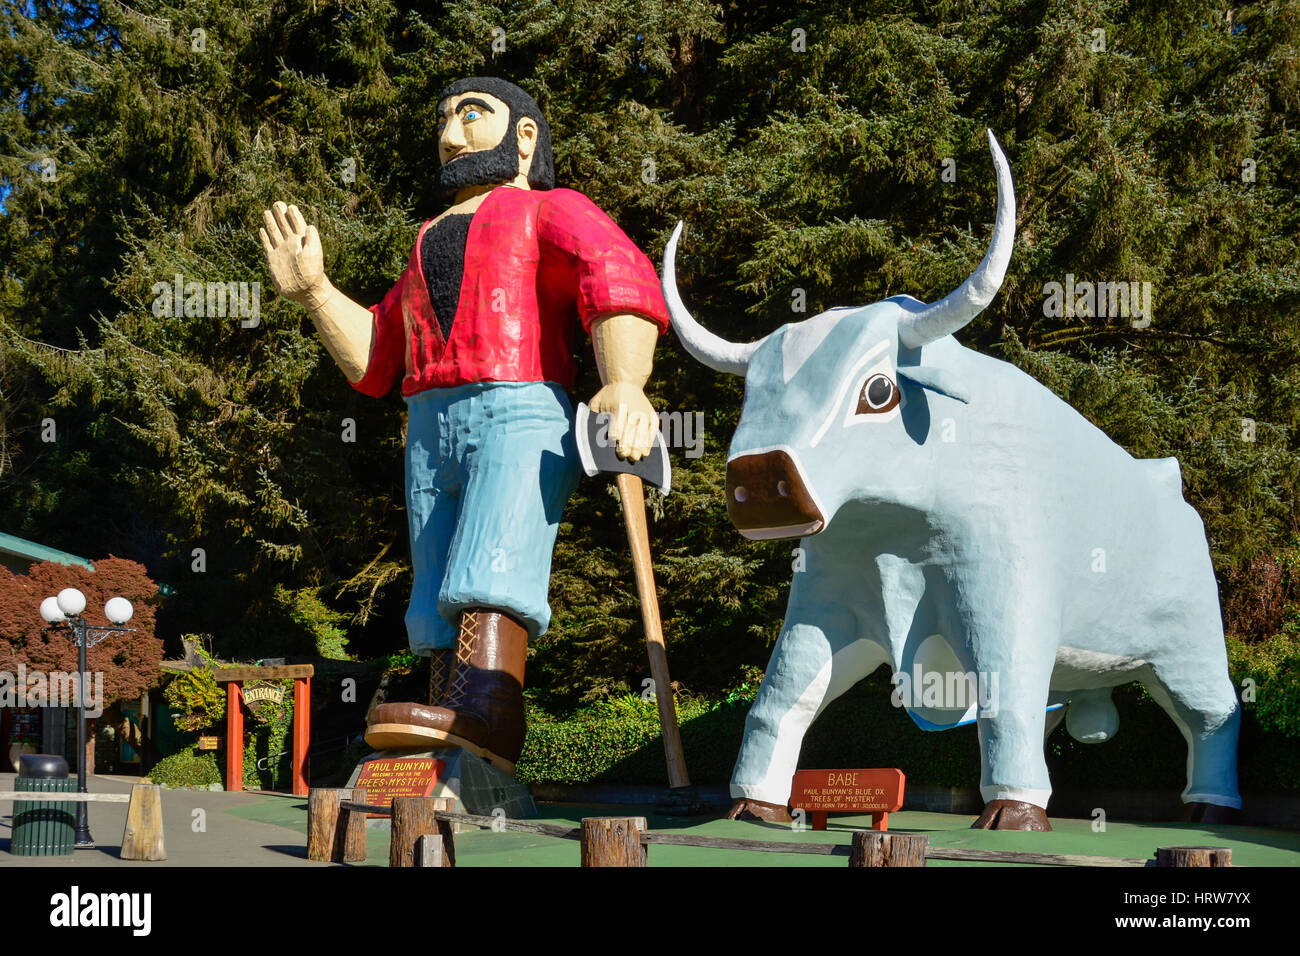 Paul Bunyan and Babe the Blue Ox statues at 'Trees of Mystery' visitor attraction in the Redwoods on Highway - Stock Image